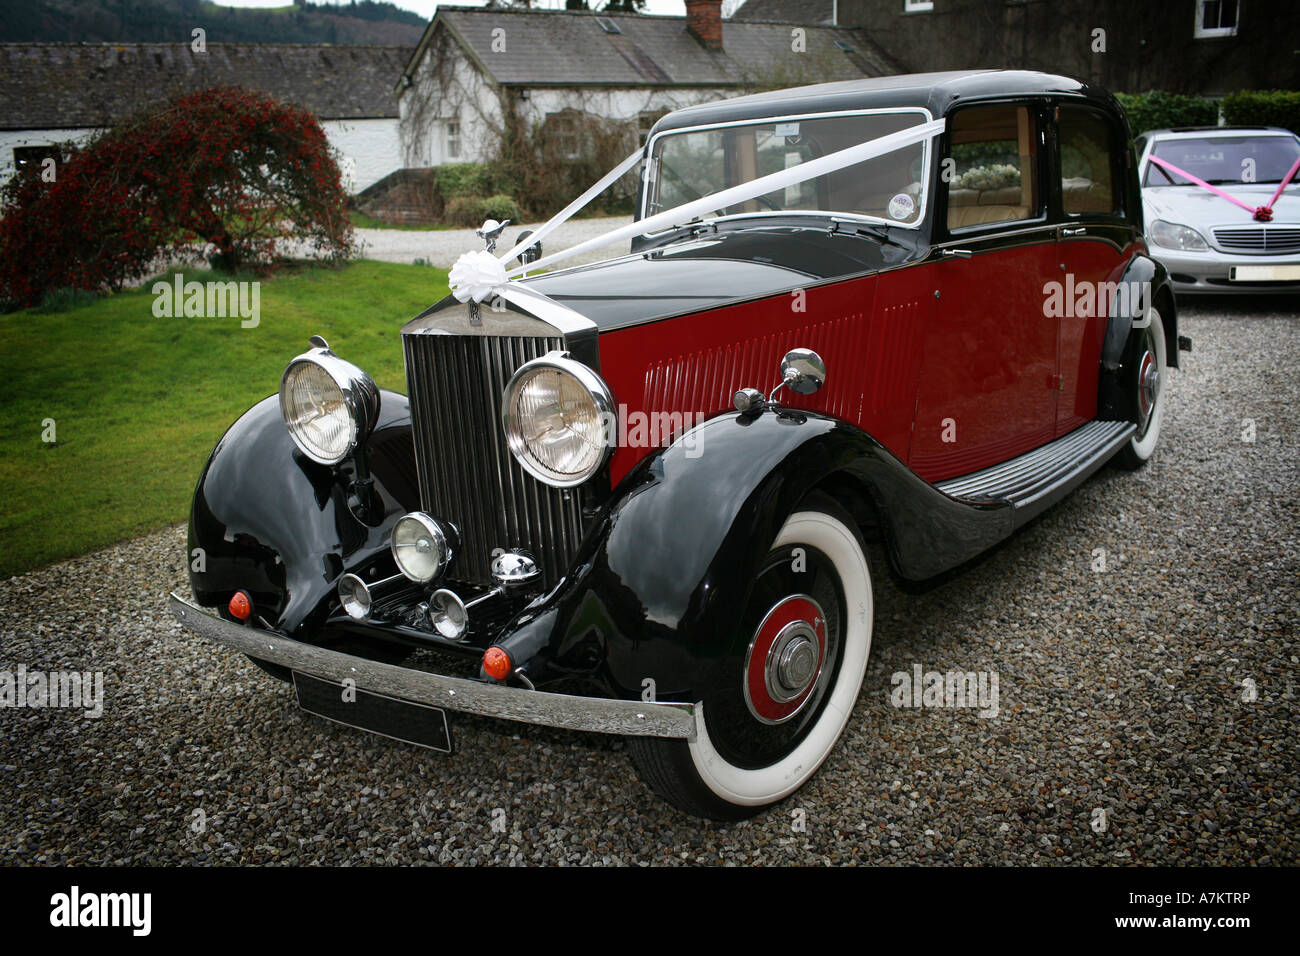 Red and black vintage Rolls Royce wedding car with typical white ...